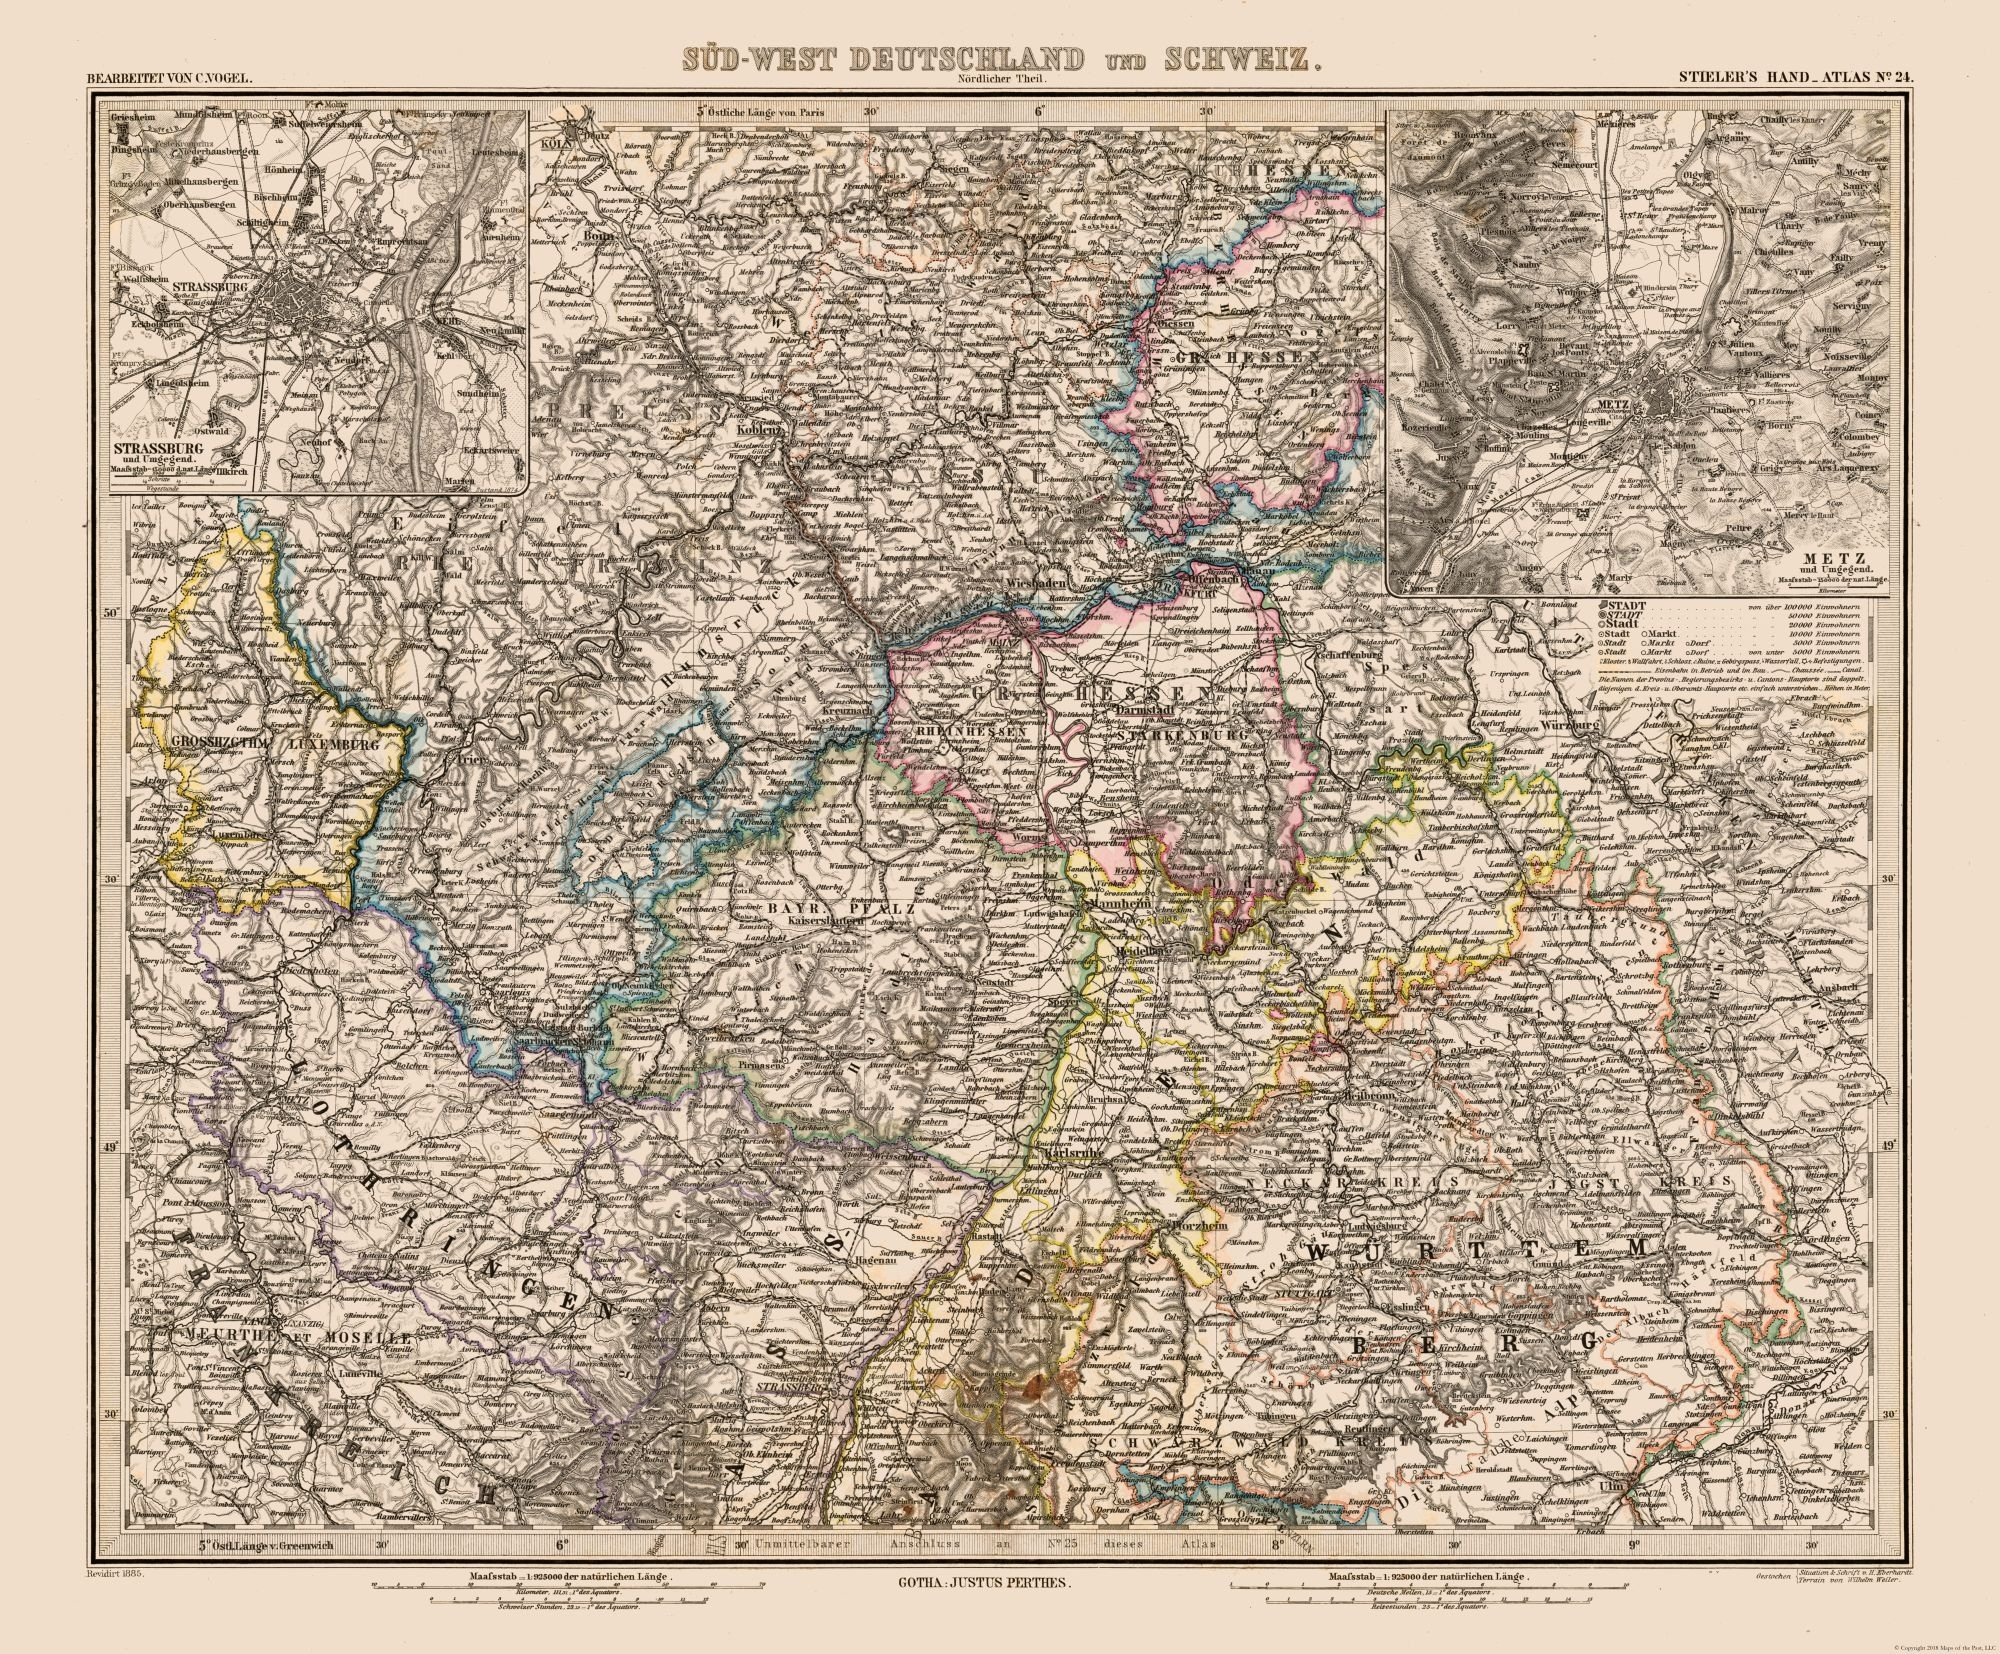 Old World Map - Sw Germany, Switzerland - Stielers 1885 - 27.82 X 23 within Old World Map Of Germany